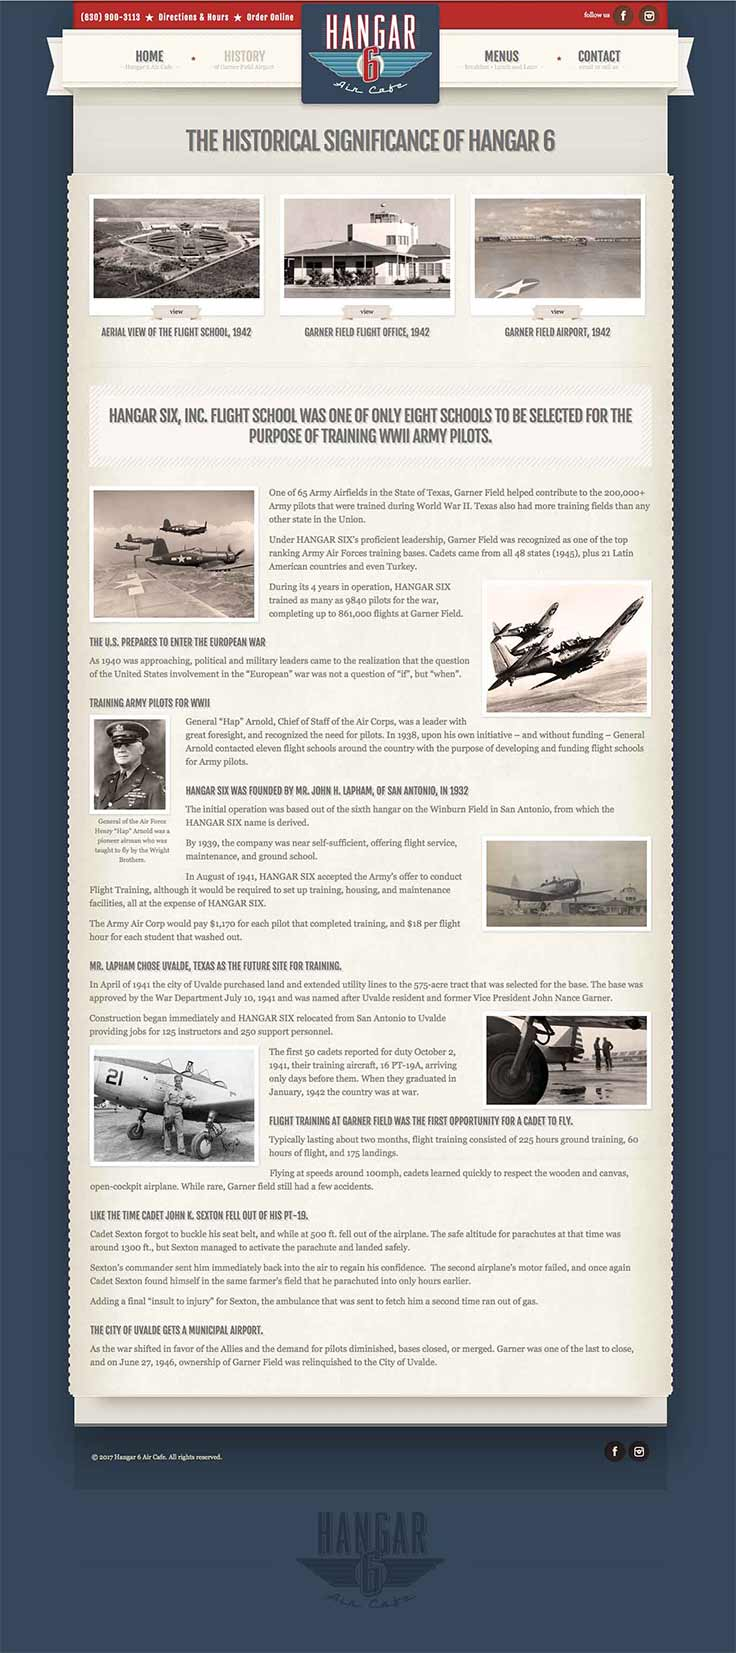 Hangar 6 Air Cafe website history page